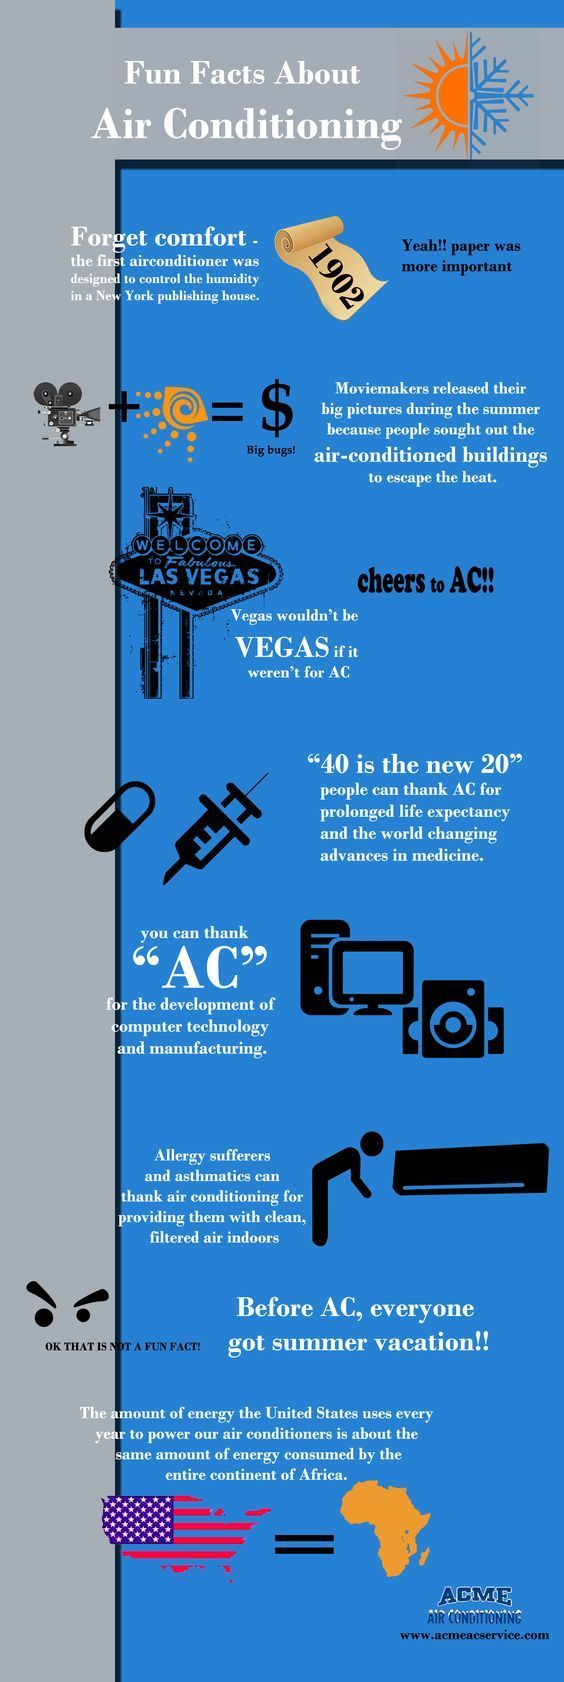 Fun Facts About Air Conditioning Infographic Airconditioning Funfacts Acfunfac Air Conditioning Repair Ac Repair Services Air Conditioner Repair